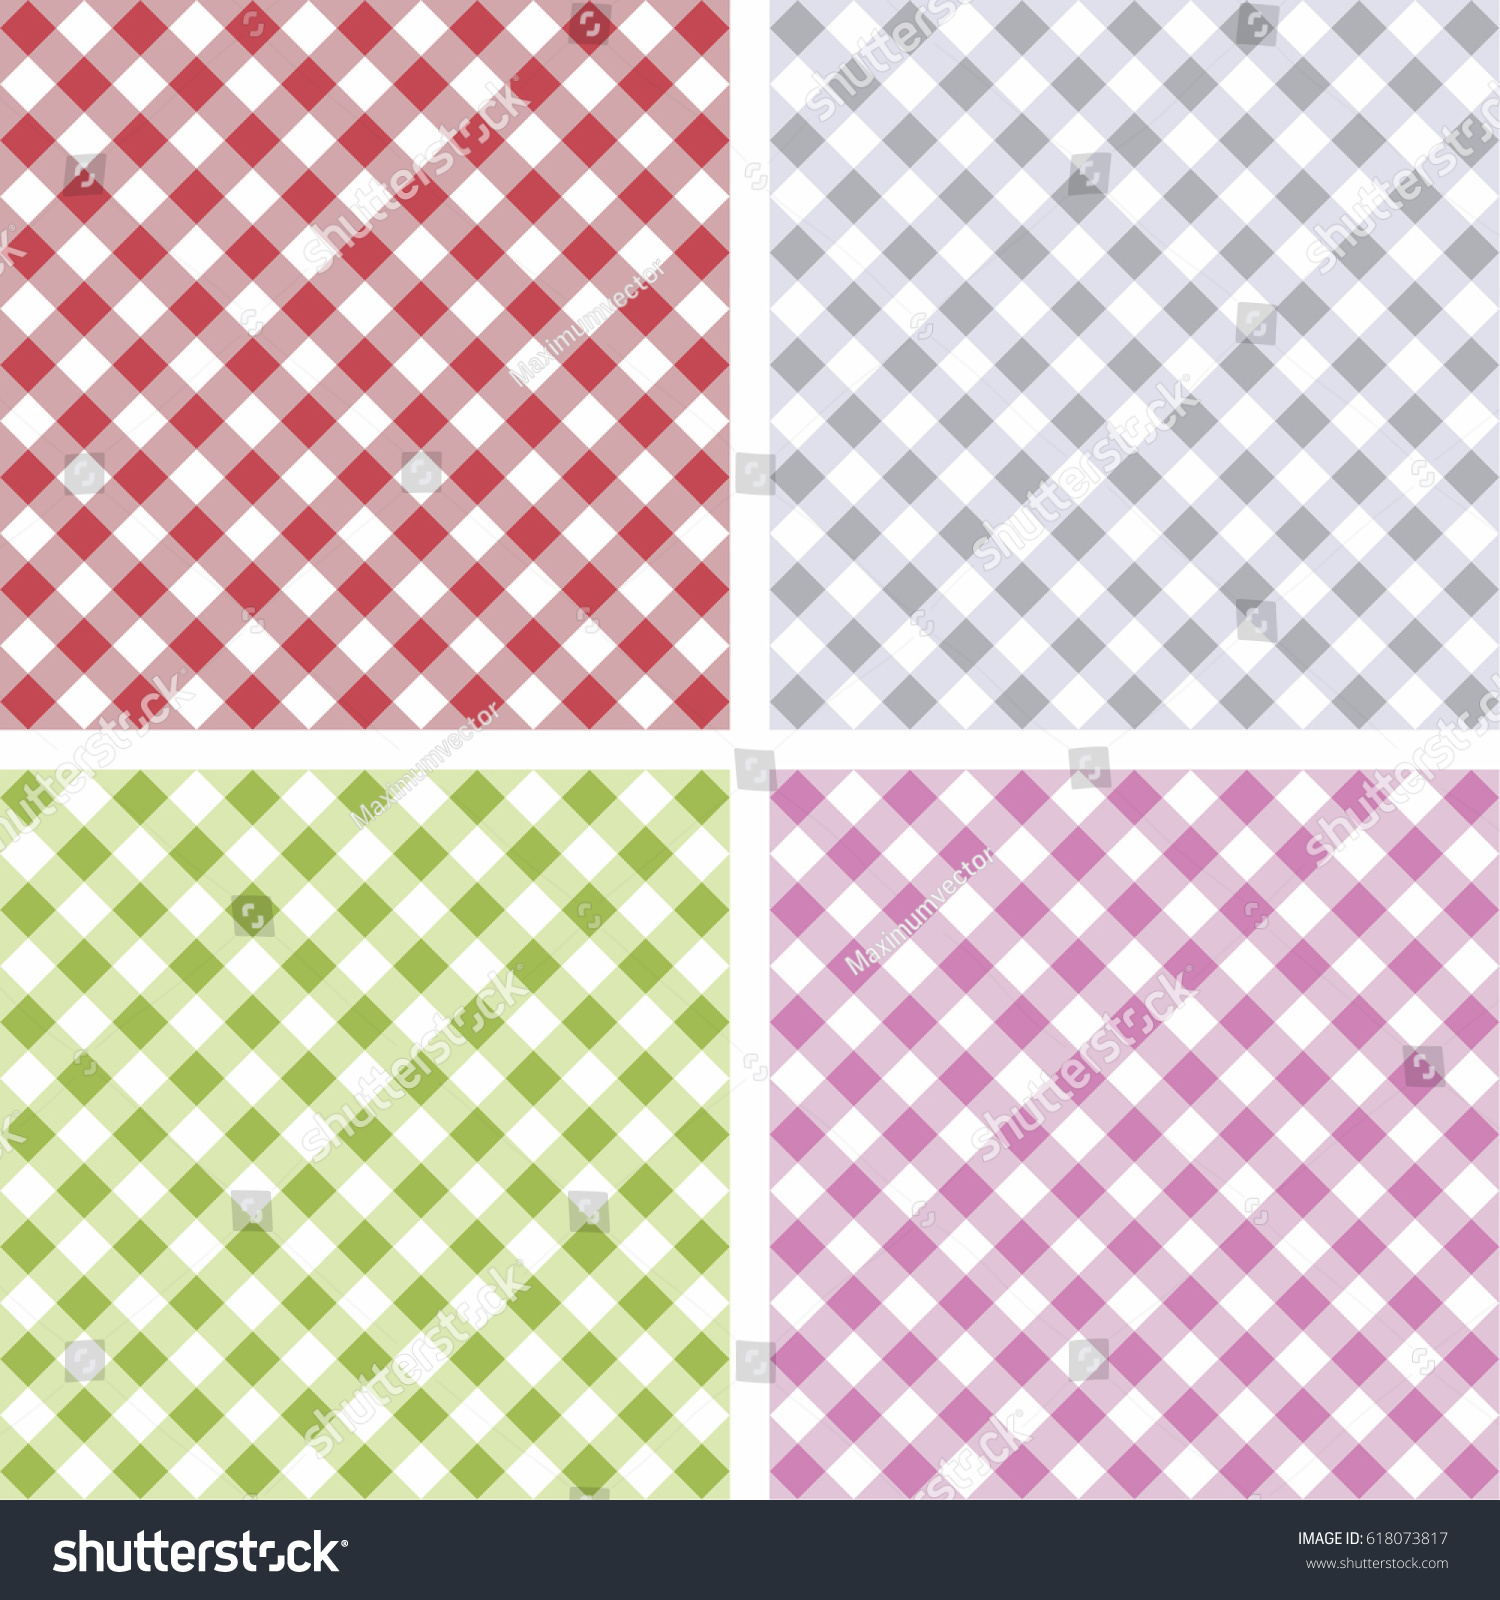 Picnic Table Background Picnic Table Cloth Color Square Plaid Stock Vector 618073817